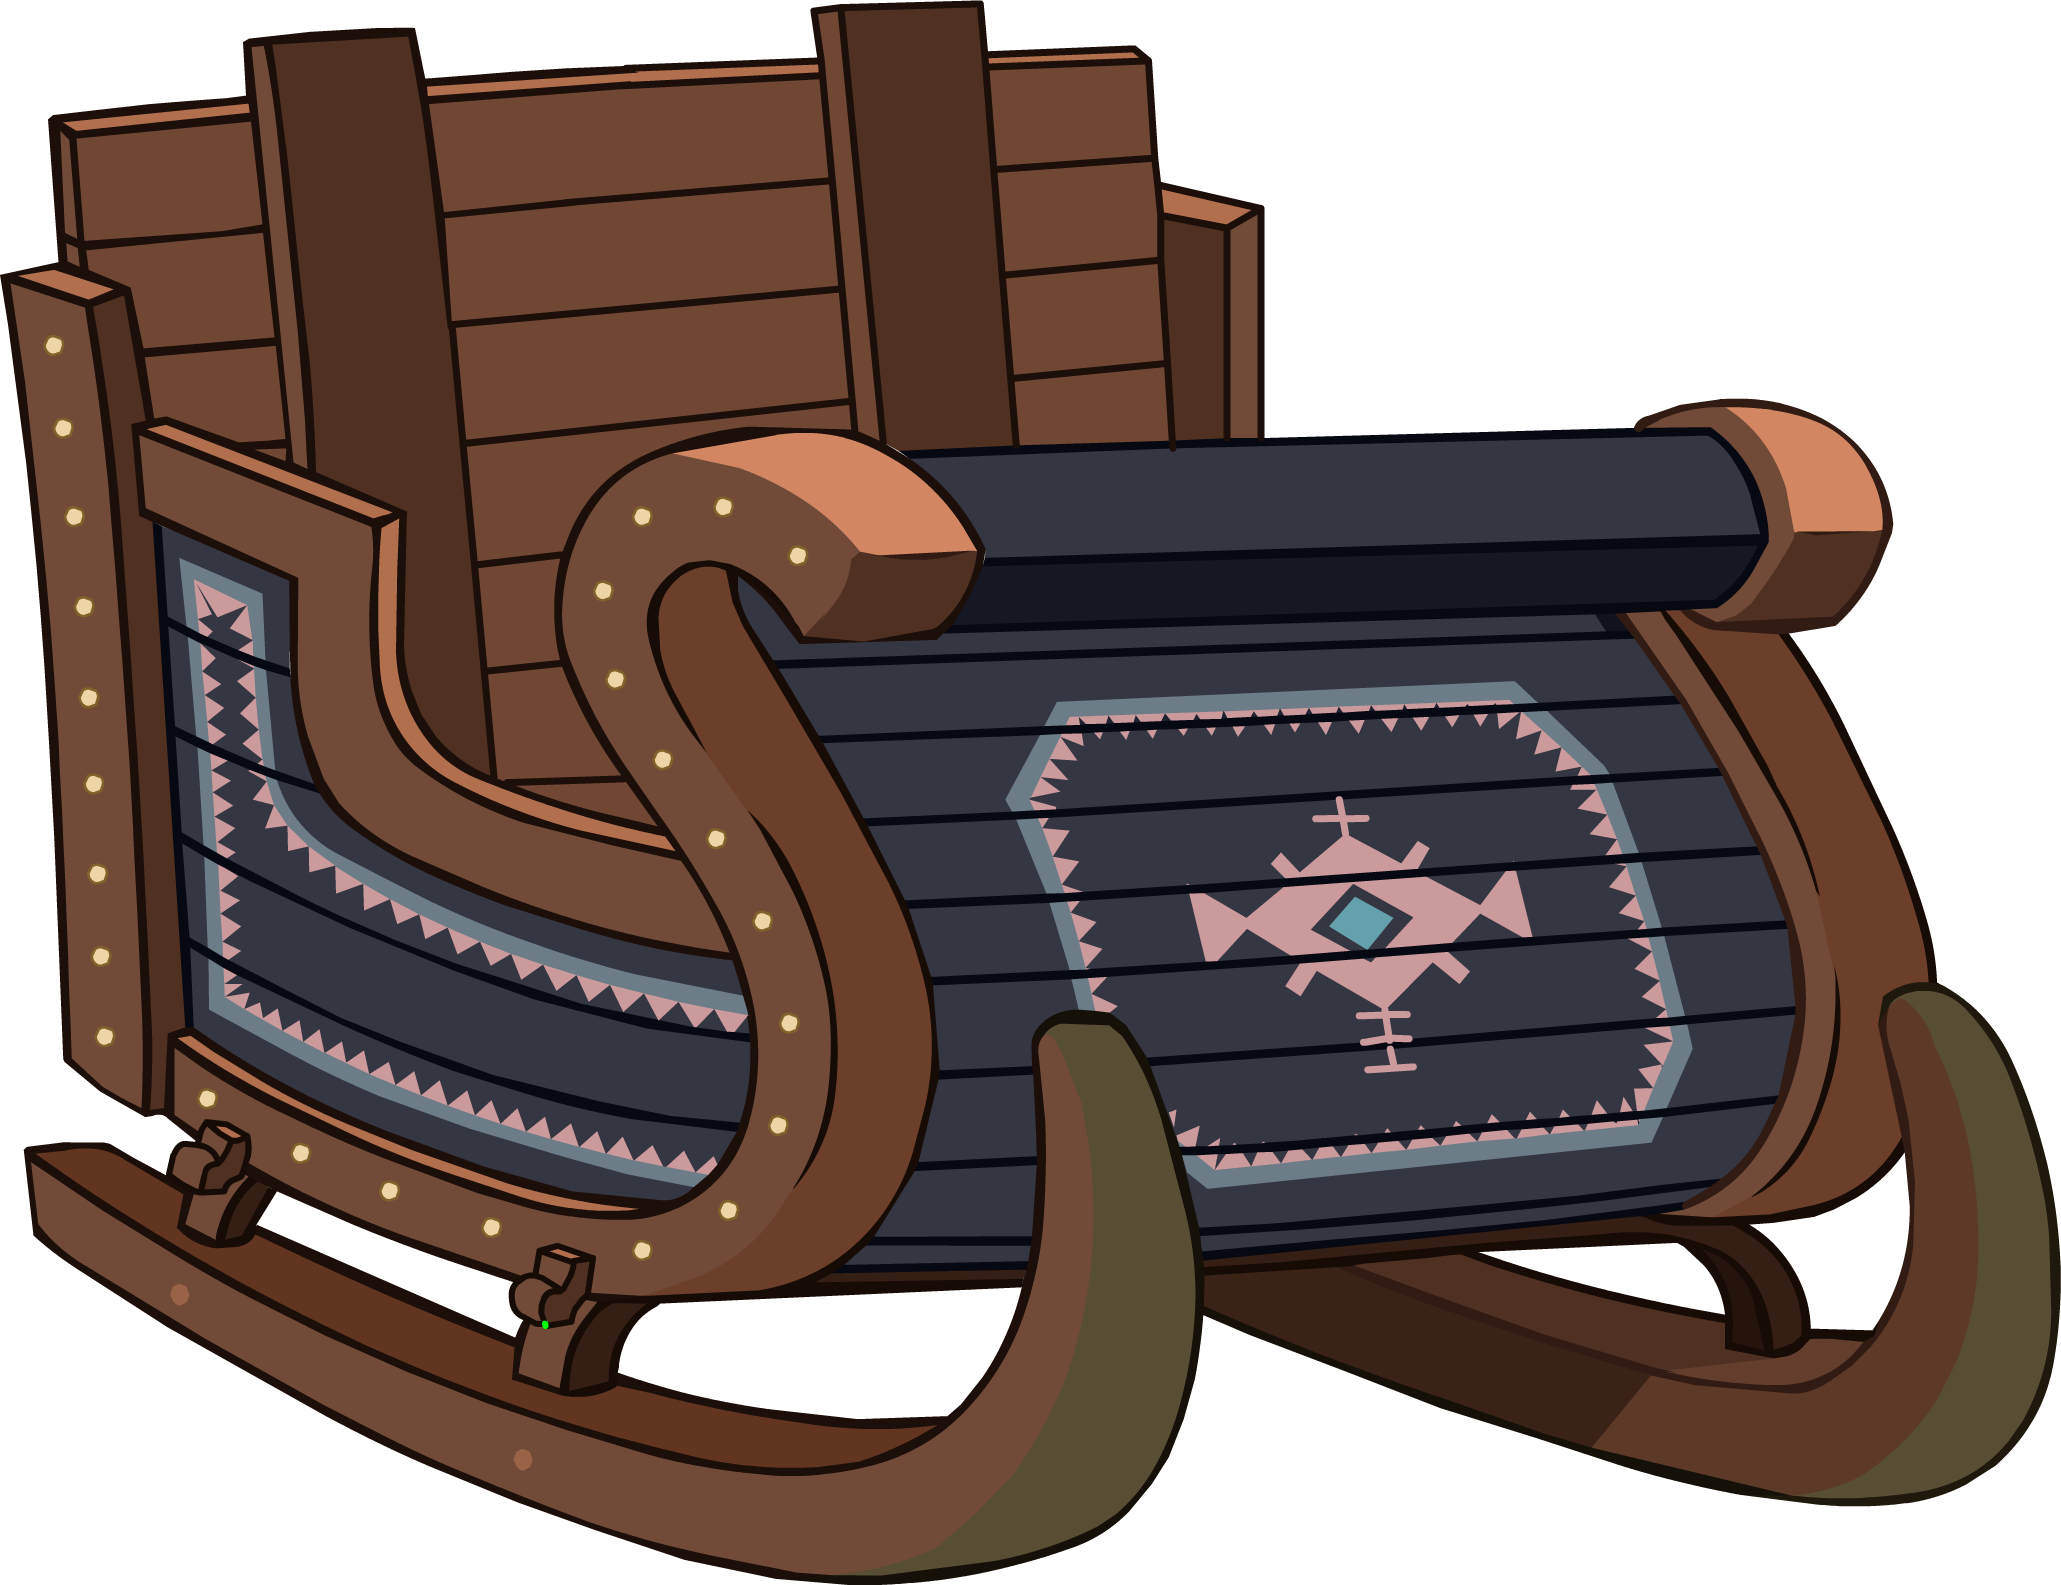 Sleigh clipart sled. Frozen fever party interface